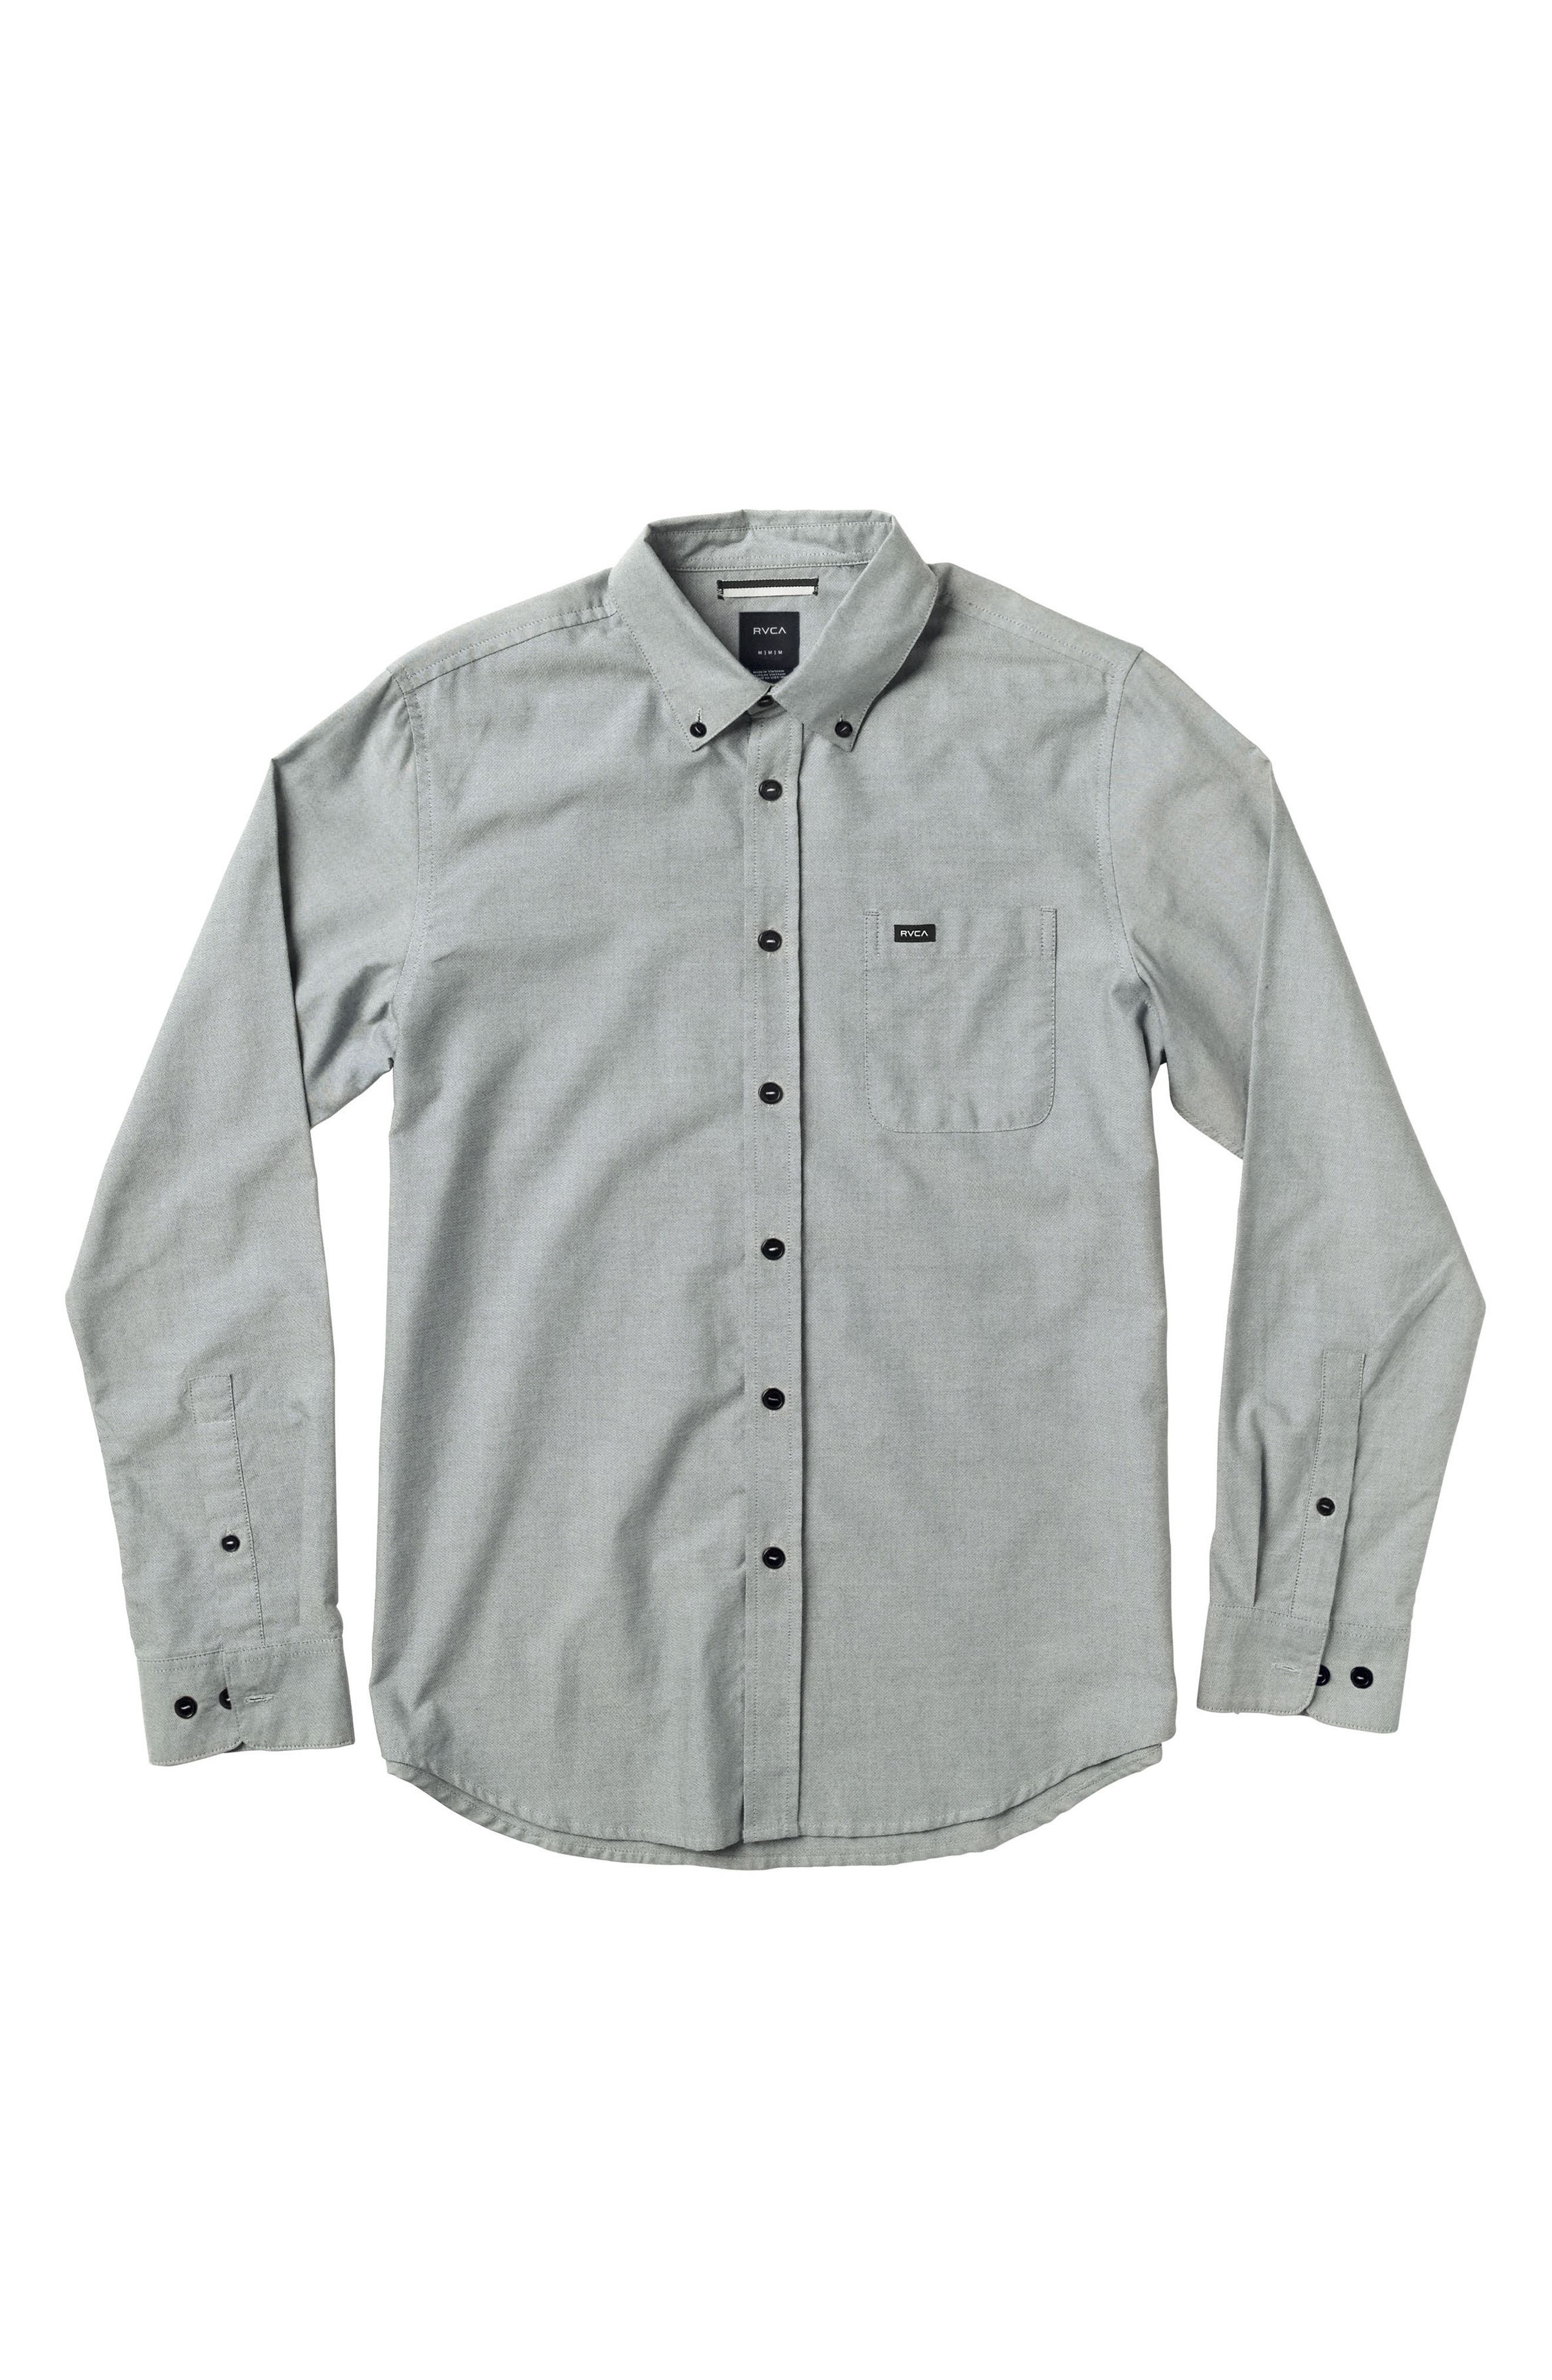 'That'll Do' Long Sleeve Oxford Woven Shirt,                         Main,                         color, PAVEMENT